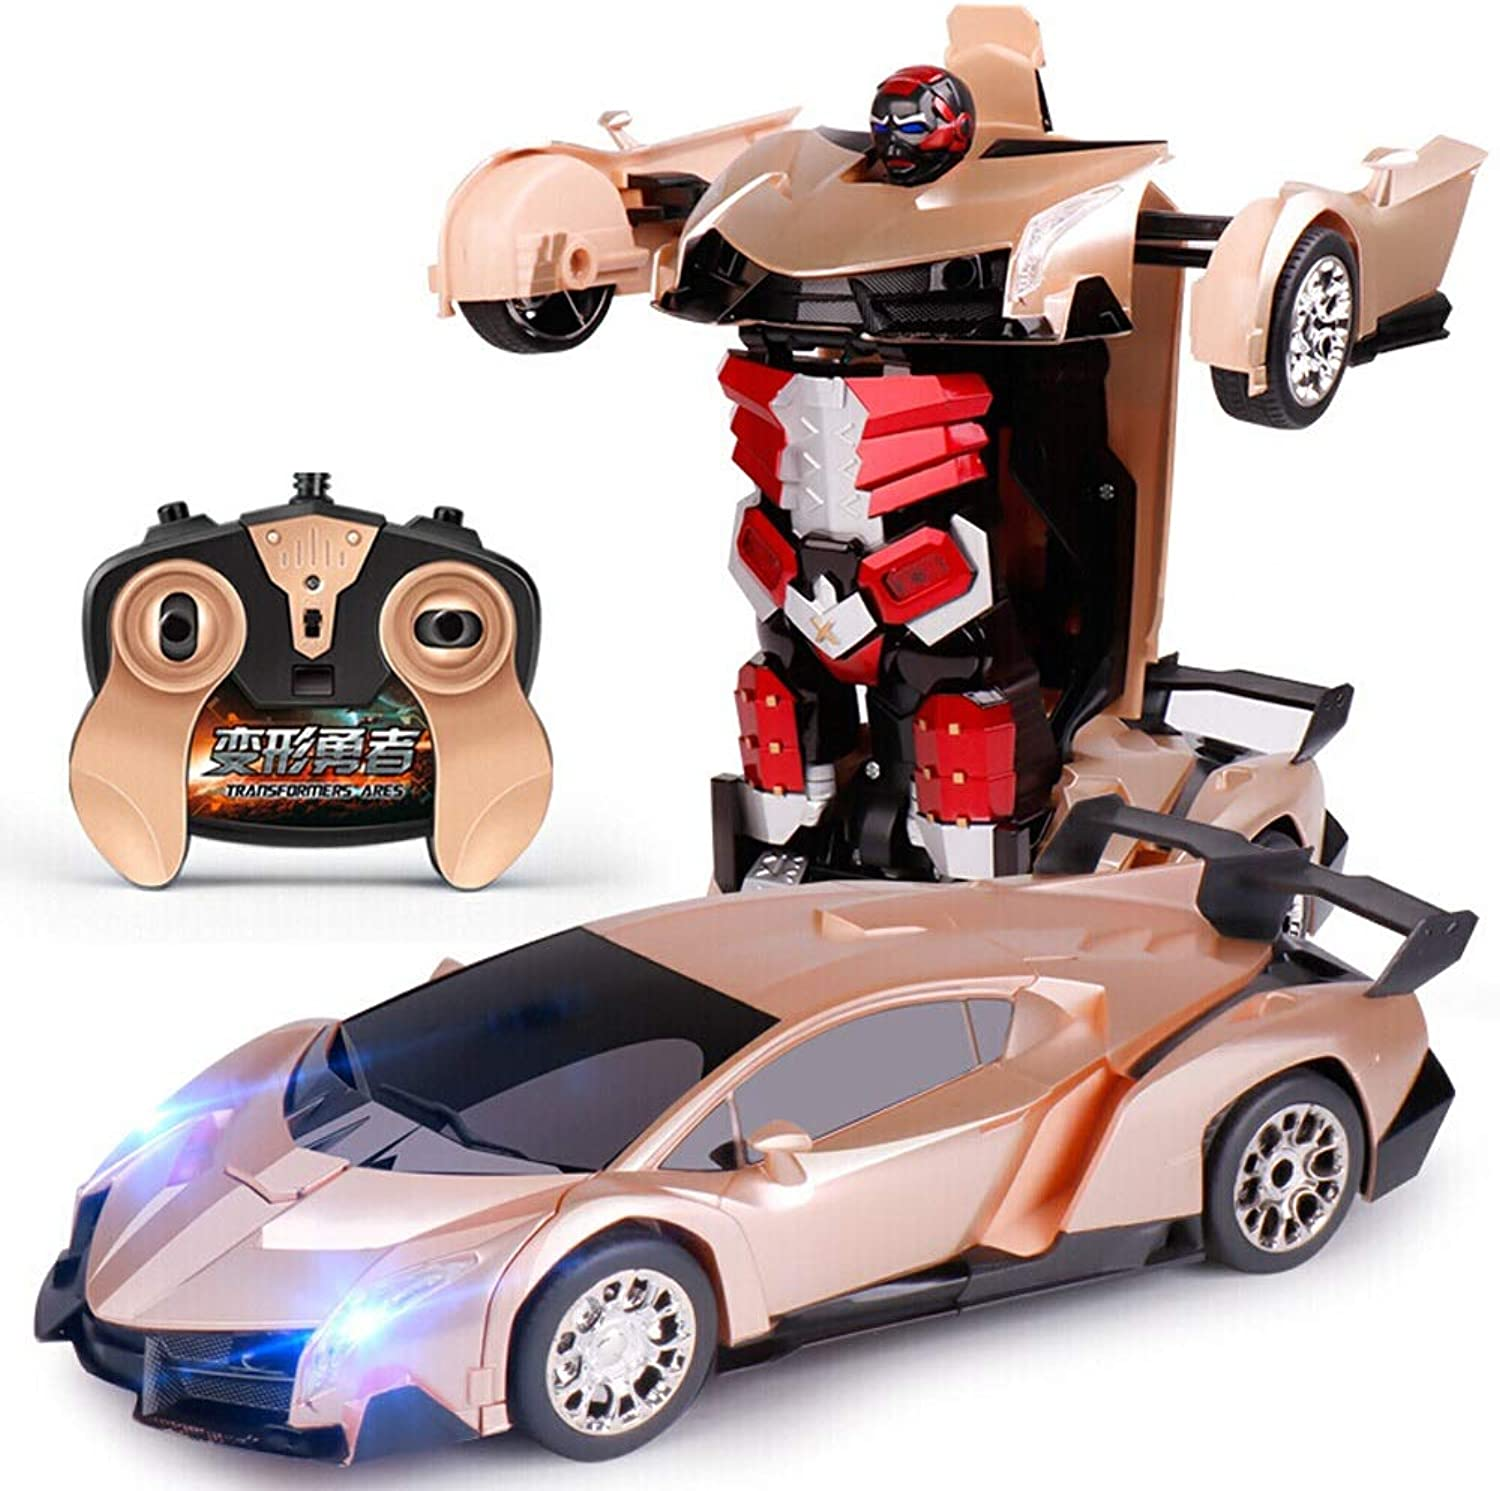 Kikioo Rechargeable Deformed Remote Control Car 2.4Ghz Traansformmers Robot Laamborgnini Toys with One Touch Transform Autobot Radio Controlled Drifting Sound Lights Holiday Birthday Gifts gold